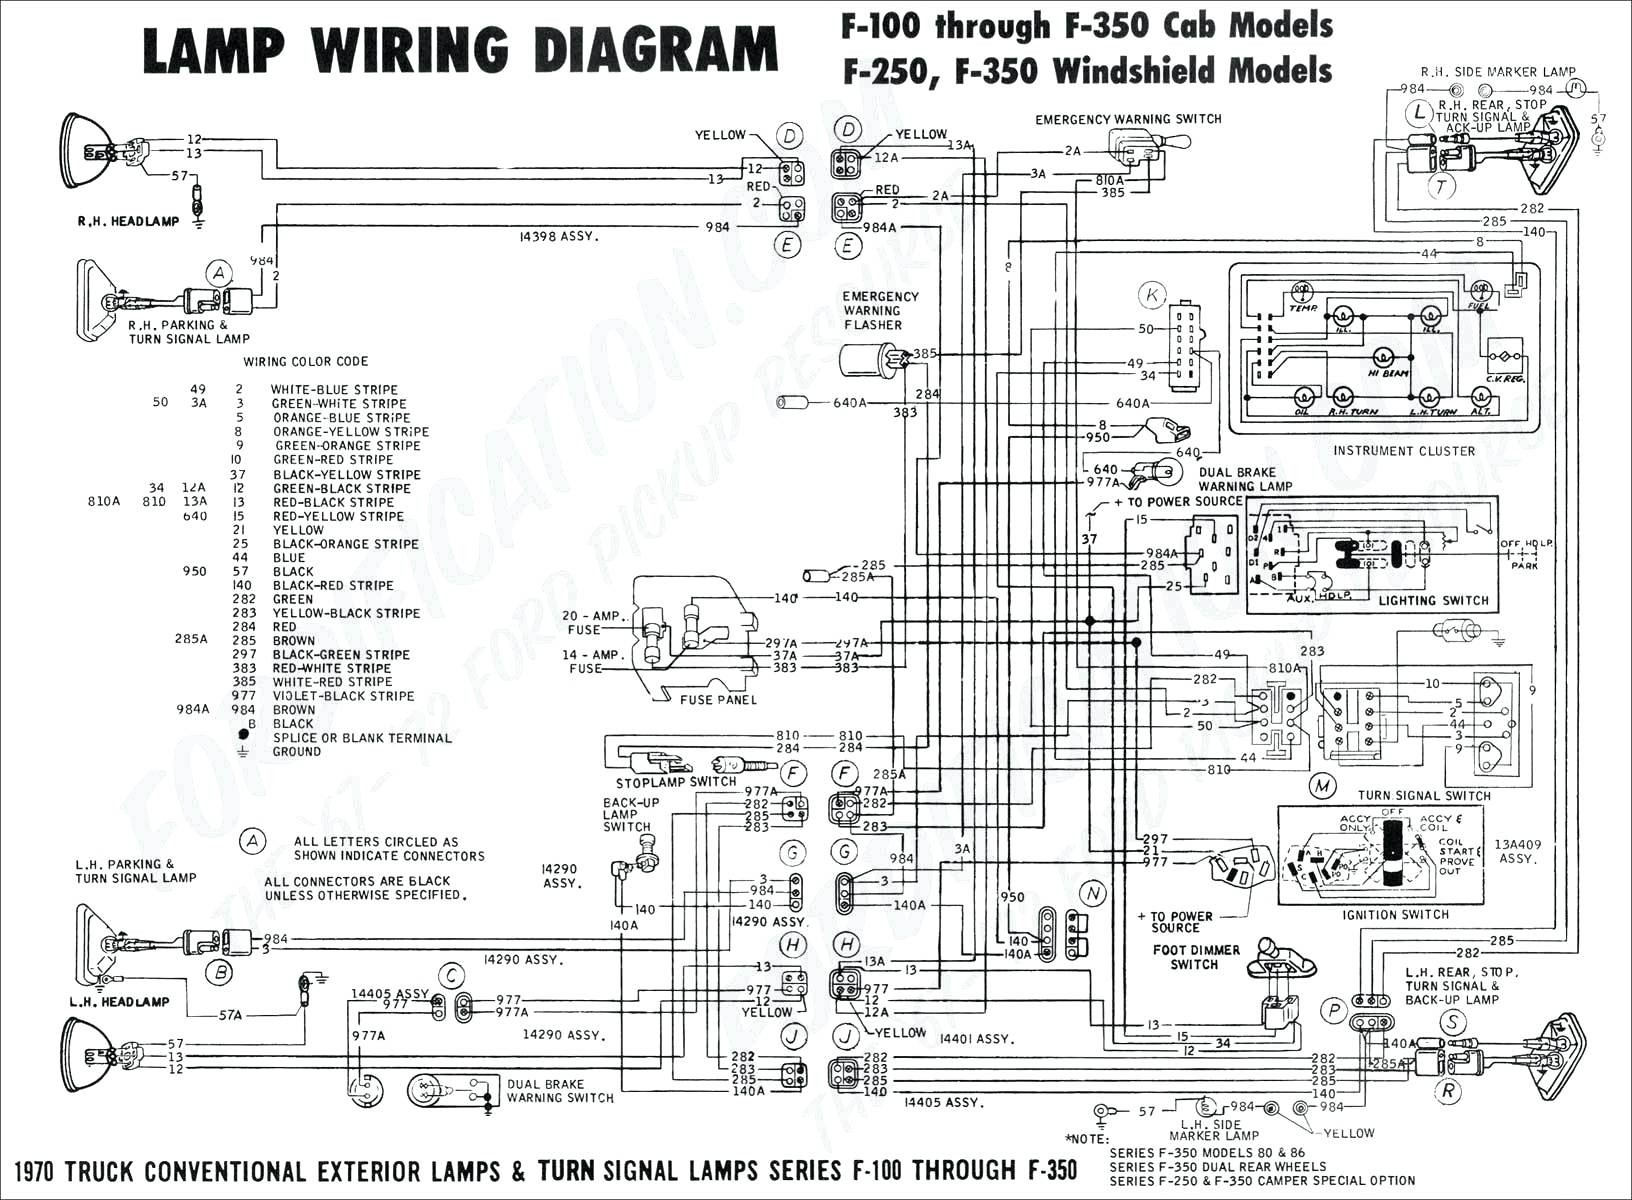 mbb interlift wiring diagram [ 1632 x 1200 Pixel ]